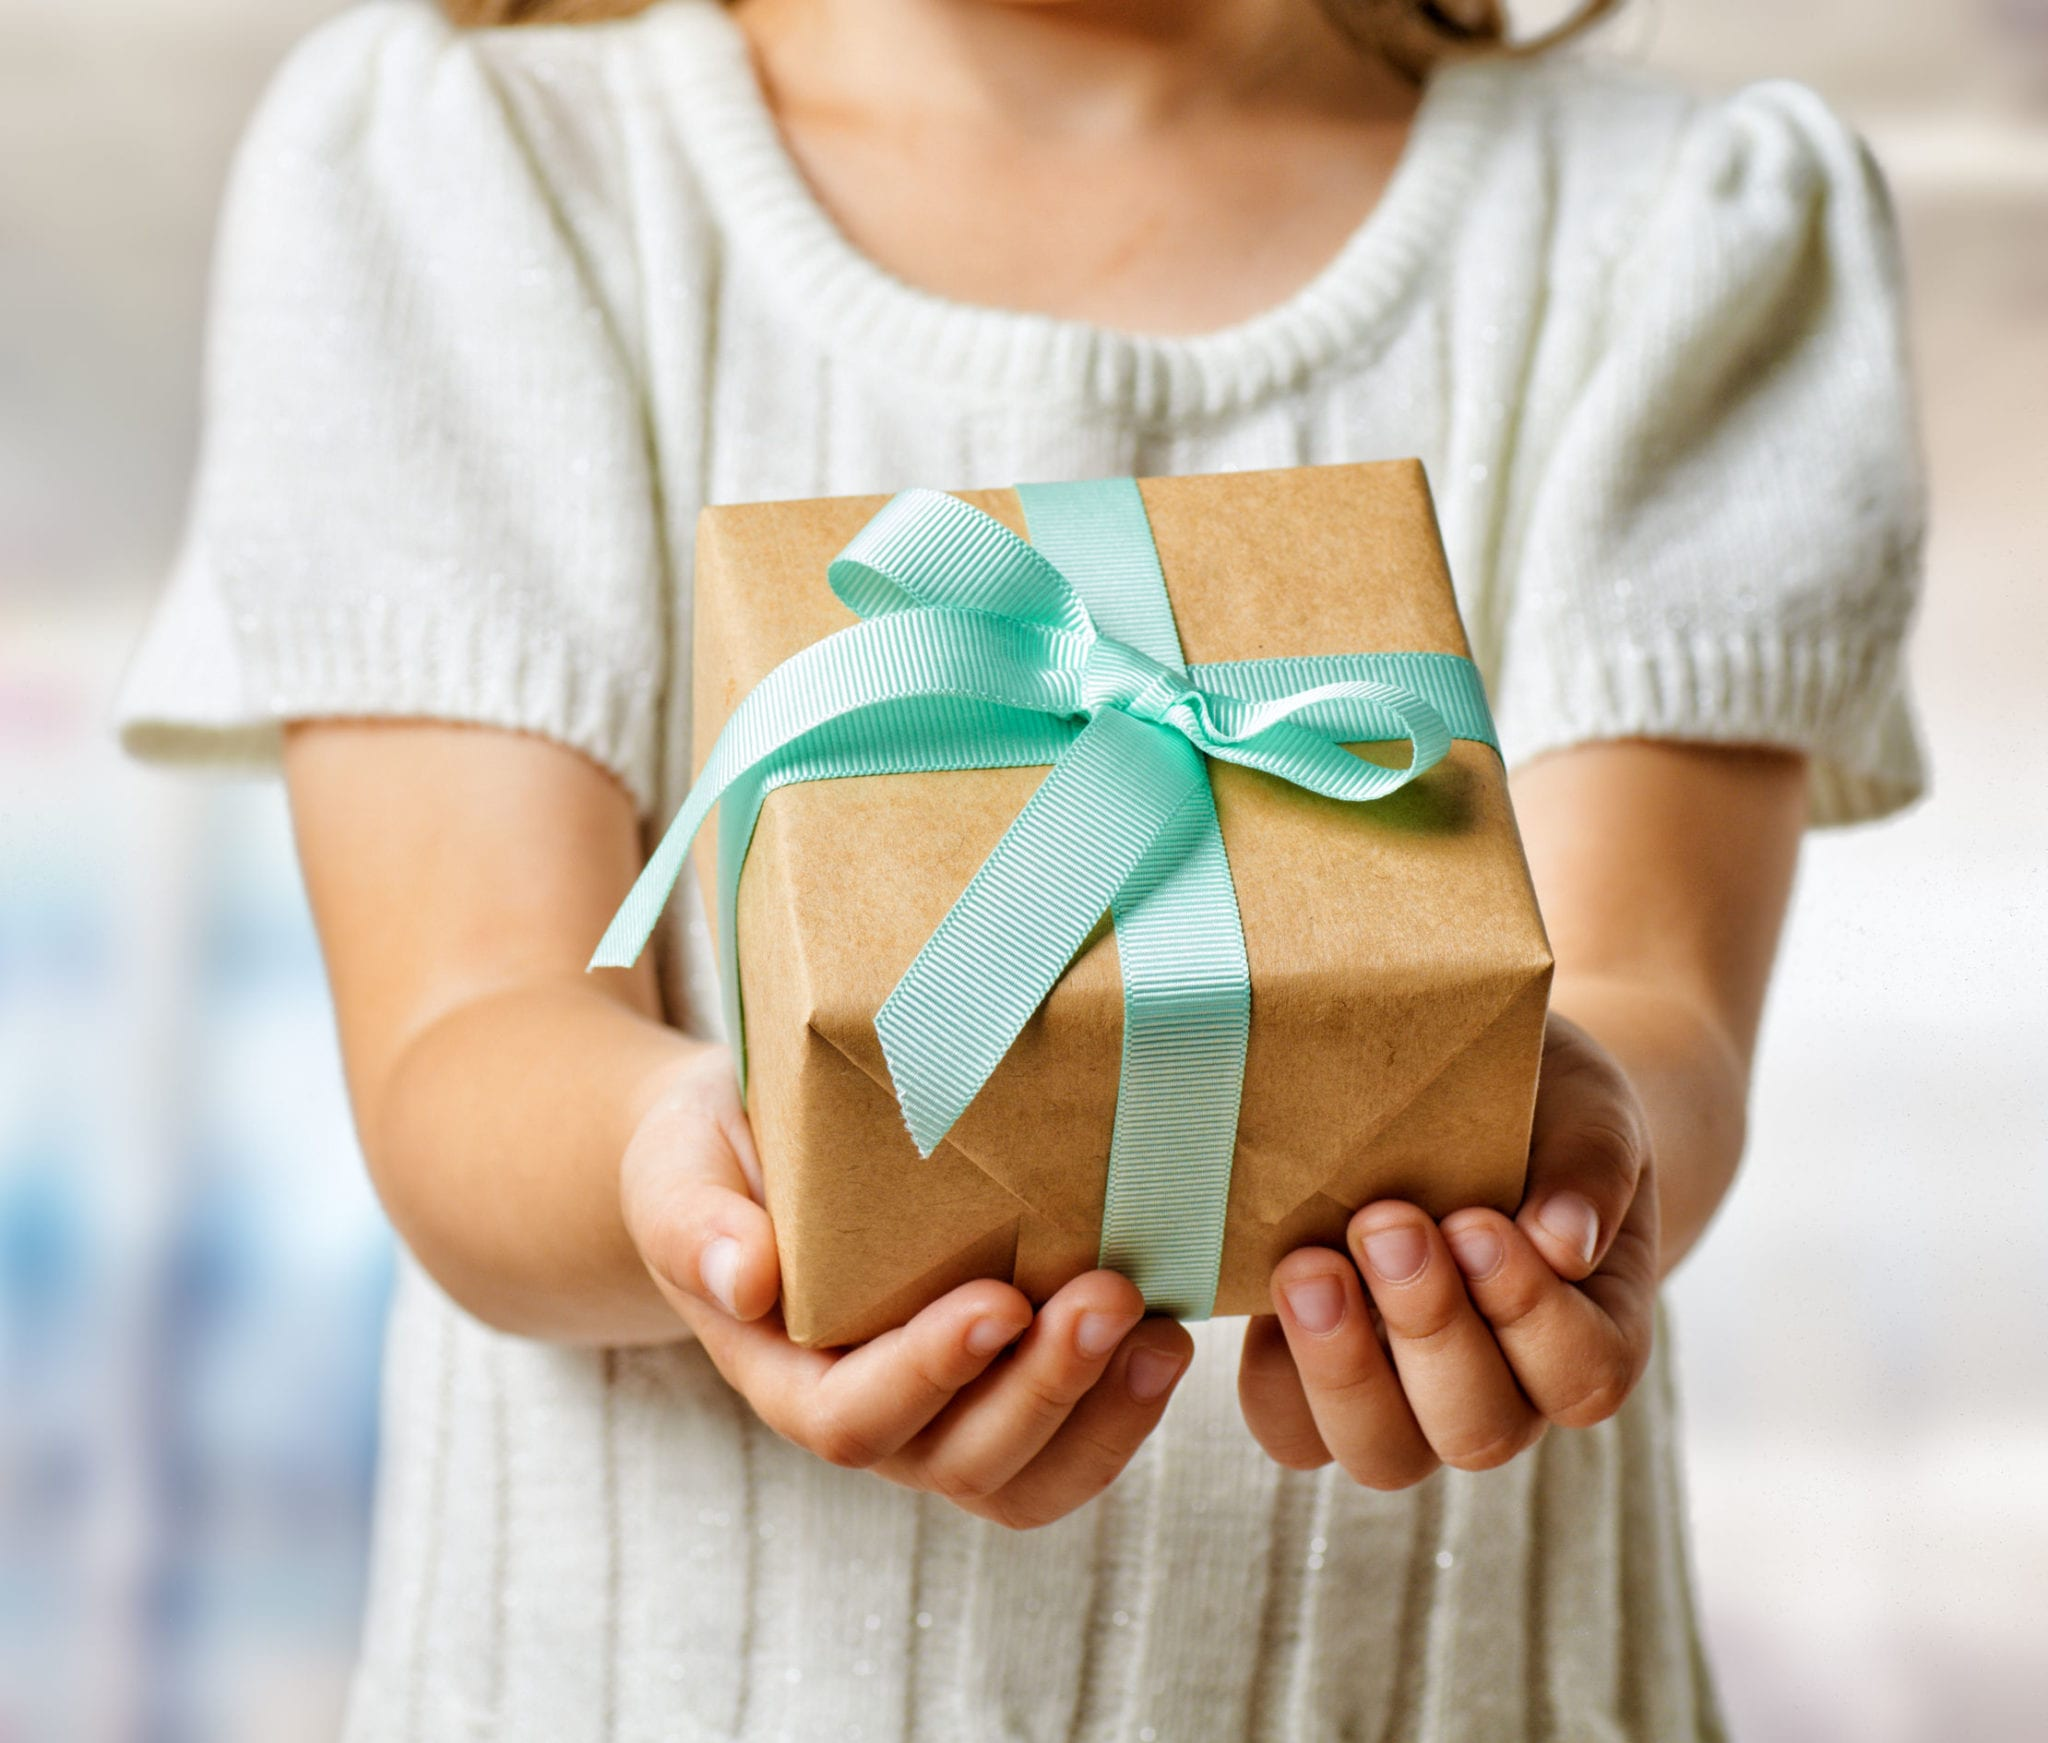 Here's What Texans Should Do If Hurt by a Defective Holiday Gift